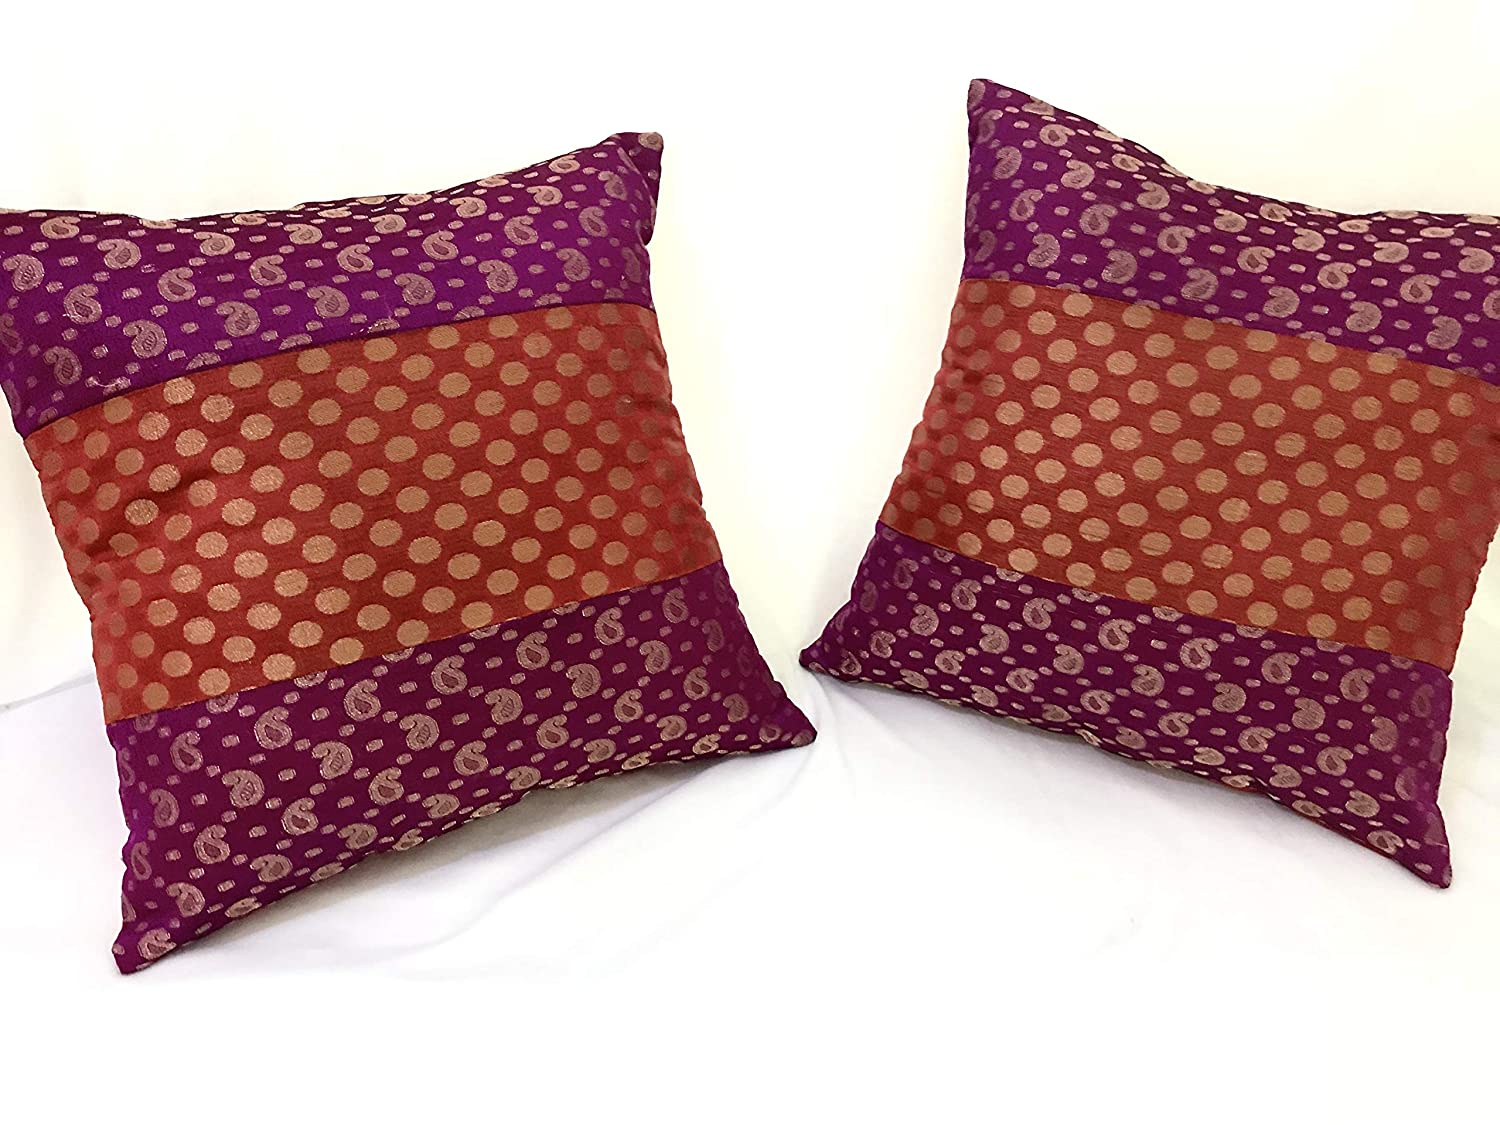 Buy Banarsi Brocade Cushion Cover - Purple, Pink & Gold Online at Low  Prices in India - Amazon.in